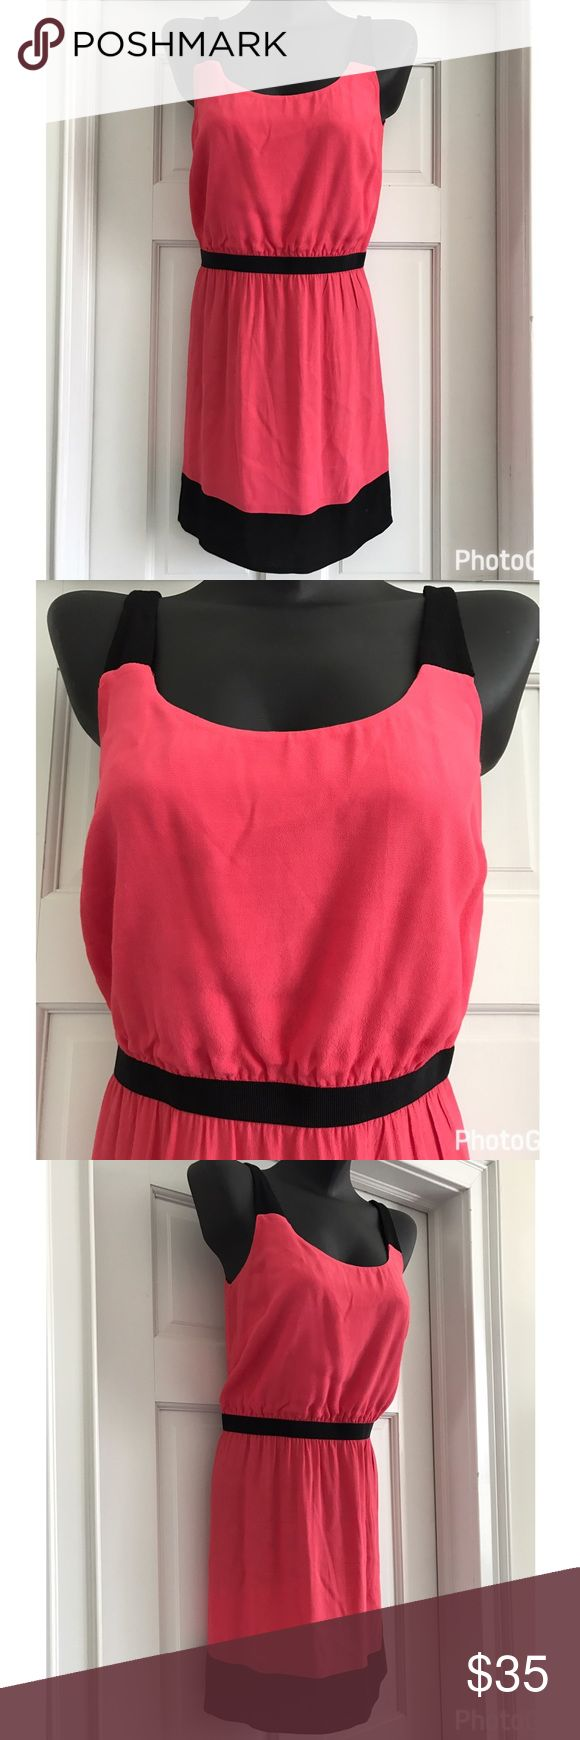 💜 LOFT Sleeveless Pink Sundress with Black Trim 8 LOFT sundress in a pink 100% Rayon fabric with black trim and black elastic waist.  Size 8.  Color is pink coral like very beautiful dress in very good condition. LOFT Dresses